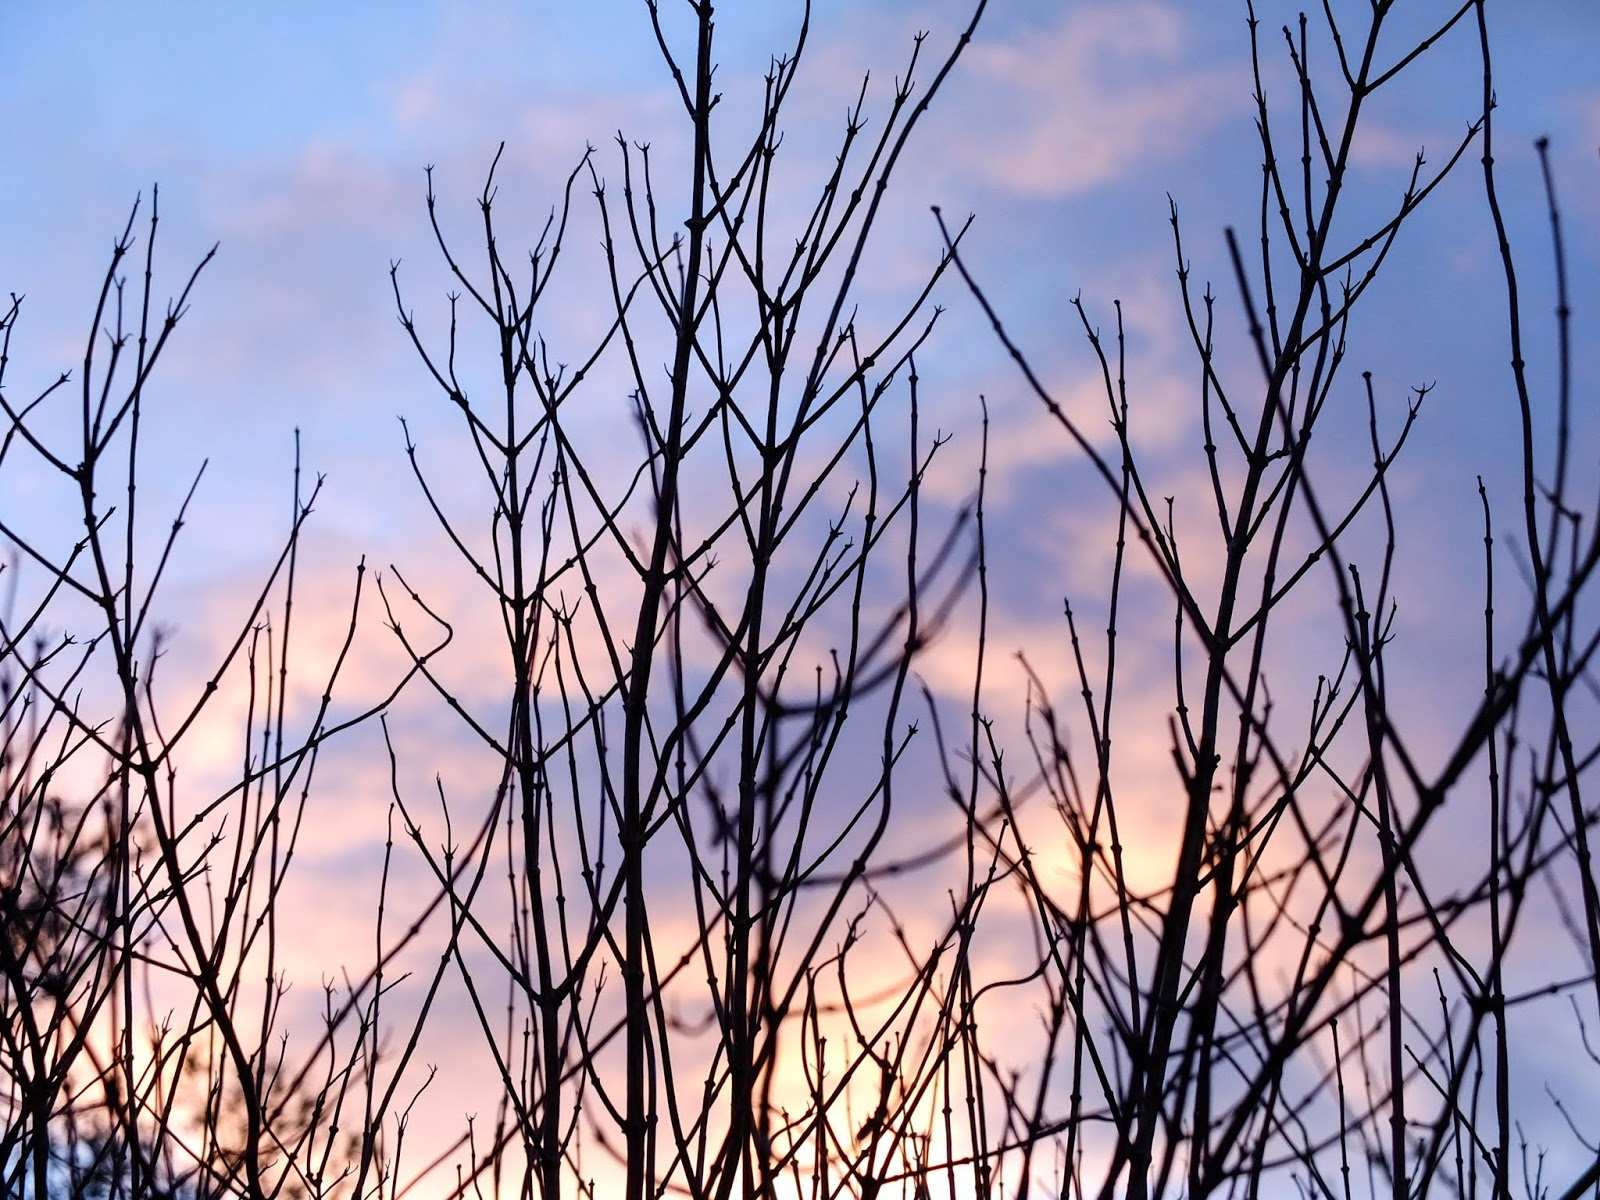 Sunset clouds behind bare Jasmine bush branches.